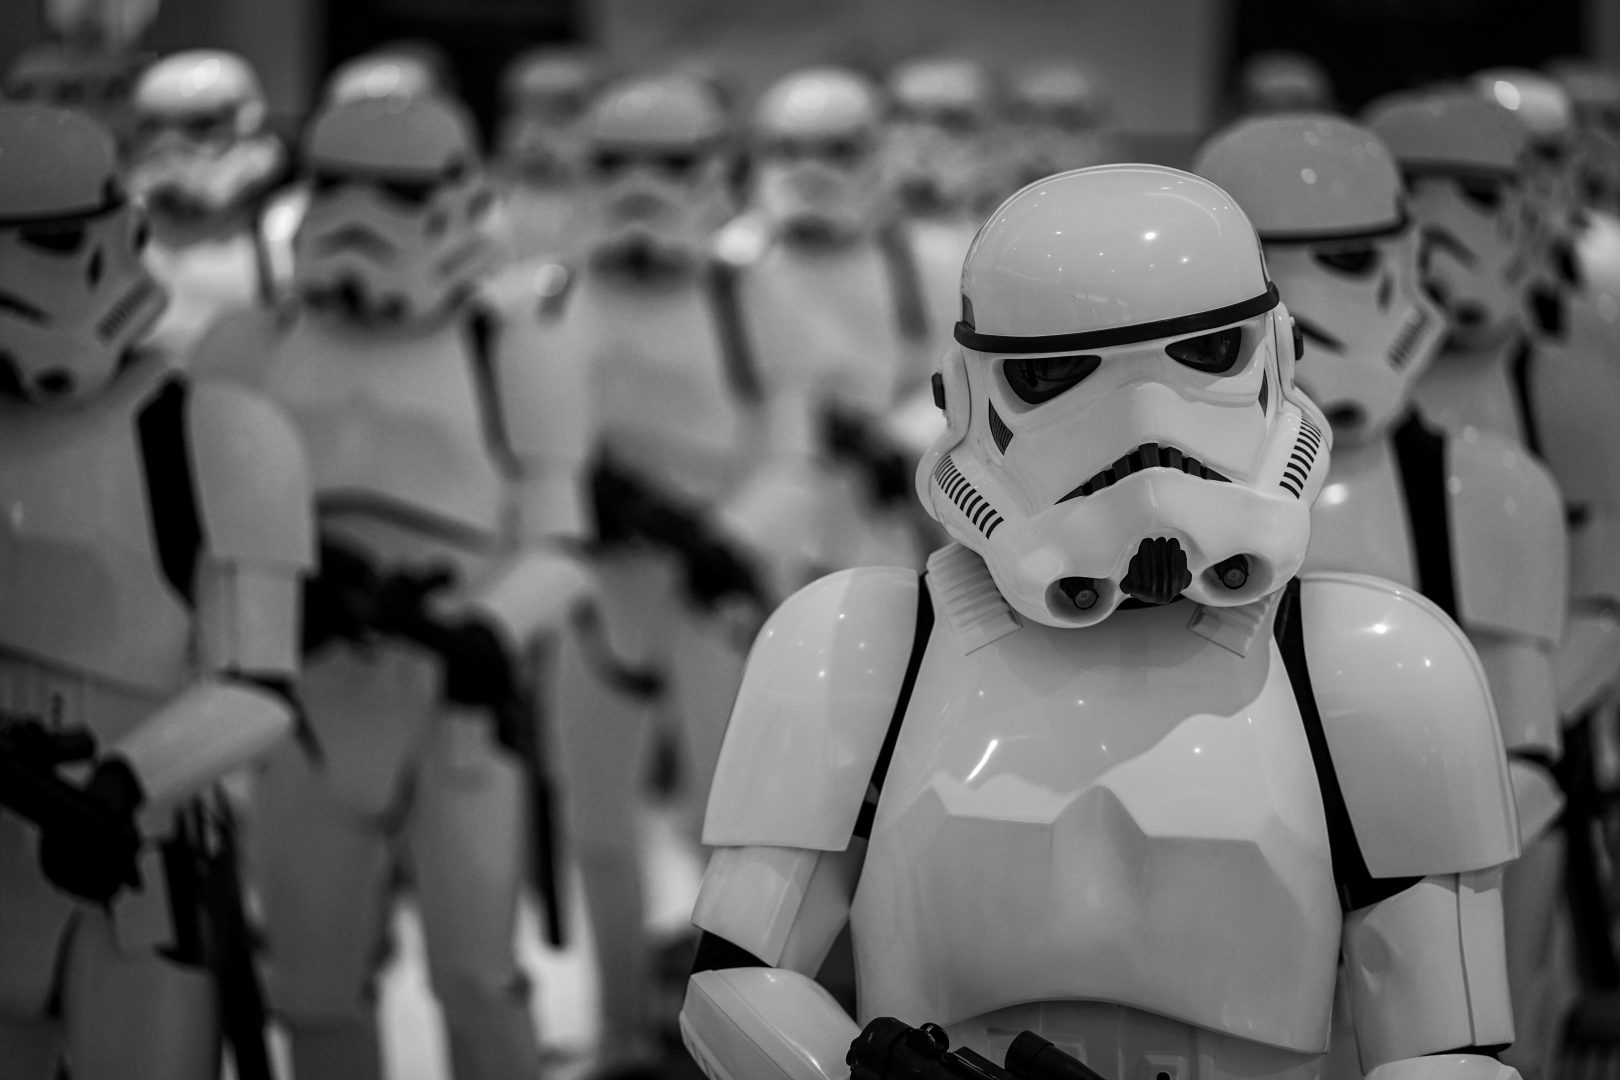 selective focus photography of Star Wars Stormtroopers